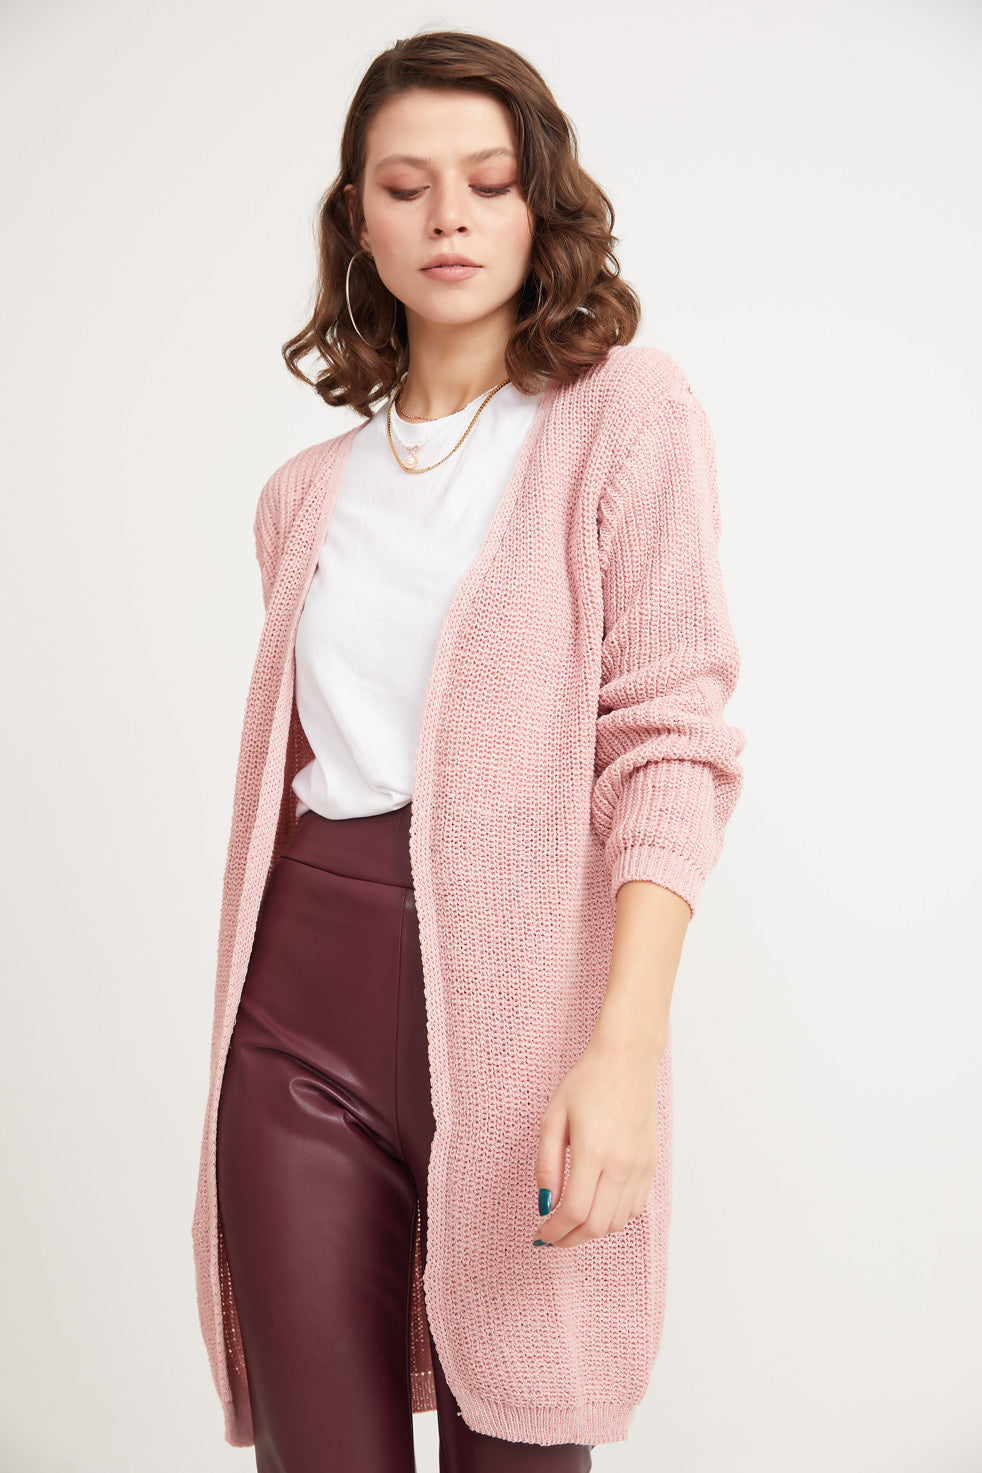 Women's Basic Powder Rose Cardigan